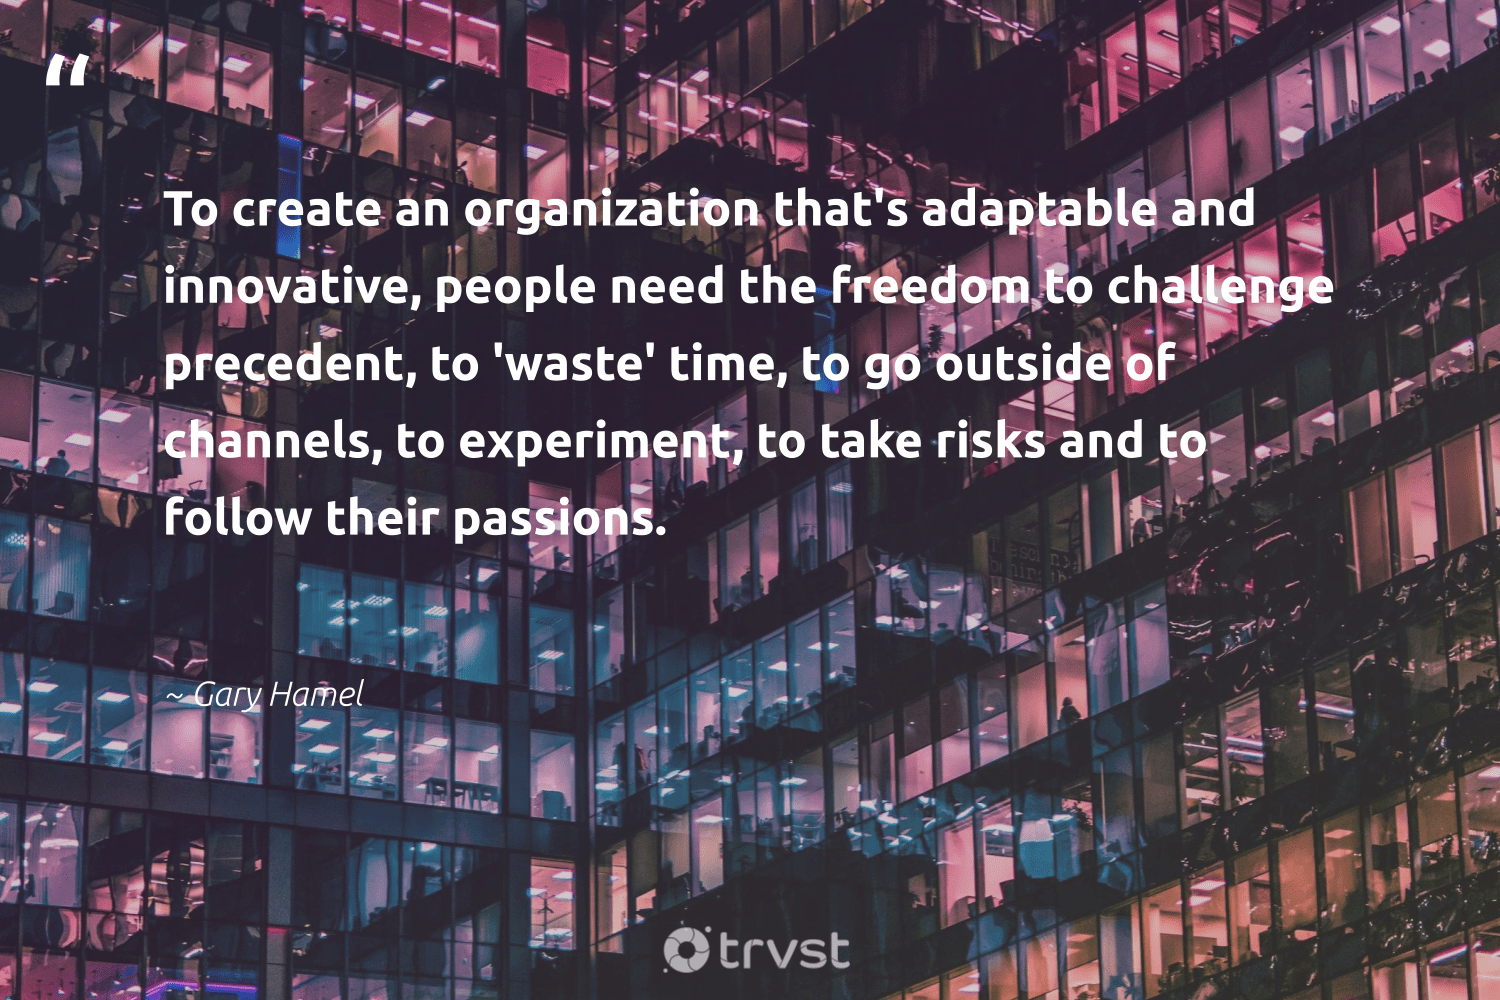 """To create an organization that's adaptable and innovative, people need the freedom to challenge precedent, to 'waste' time, to go outside of channels, to experiment, to take risks and to follow their passions.""  - Gary Hamel #trvst #quotes #freedom #waste #weareallone #planetearthfirst #ethicalbusiness #bethechange #betterplanet #takeaction #socialchange #changetheworld"